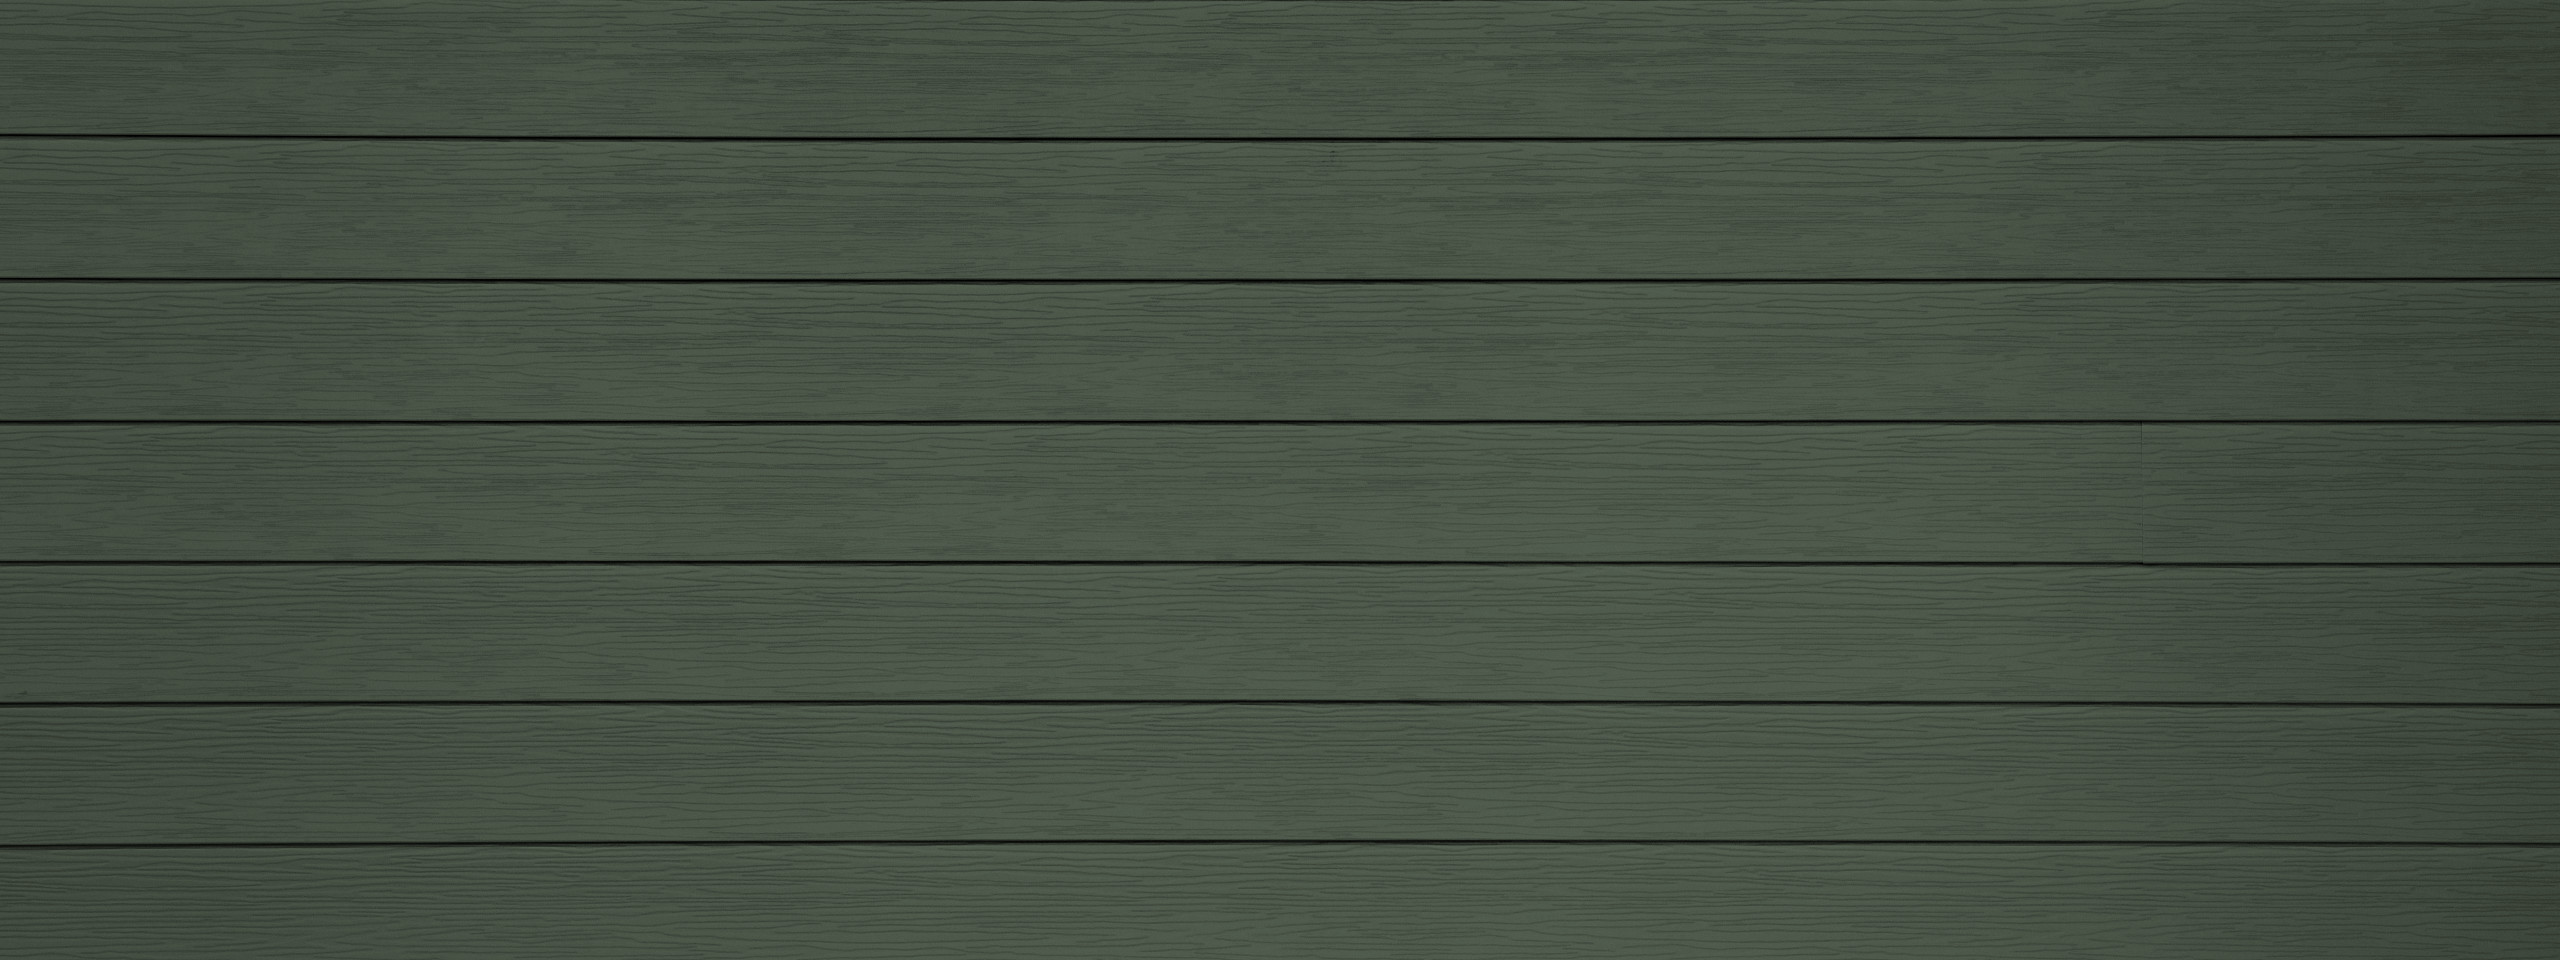 Entex traditional lap willow horizontal steel siding